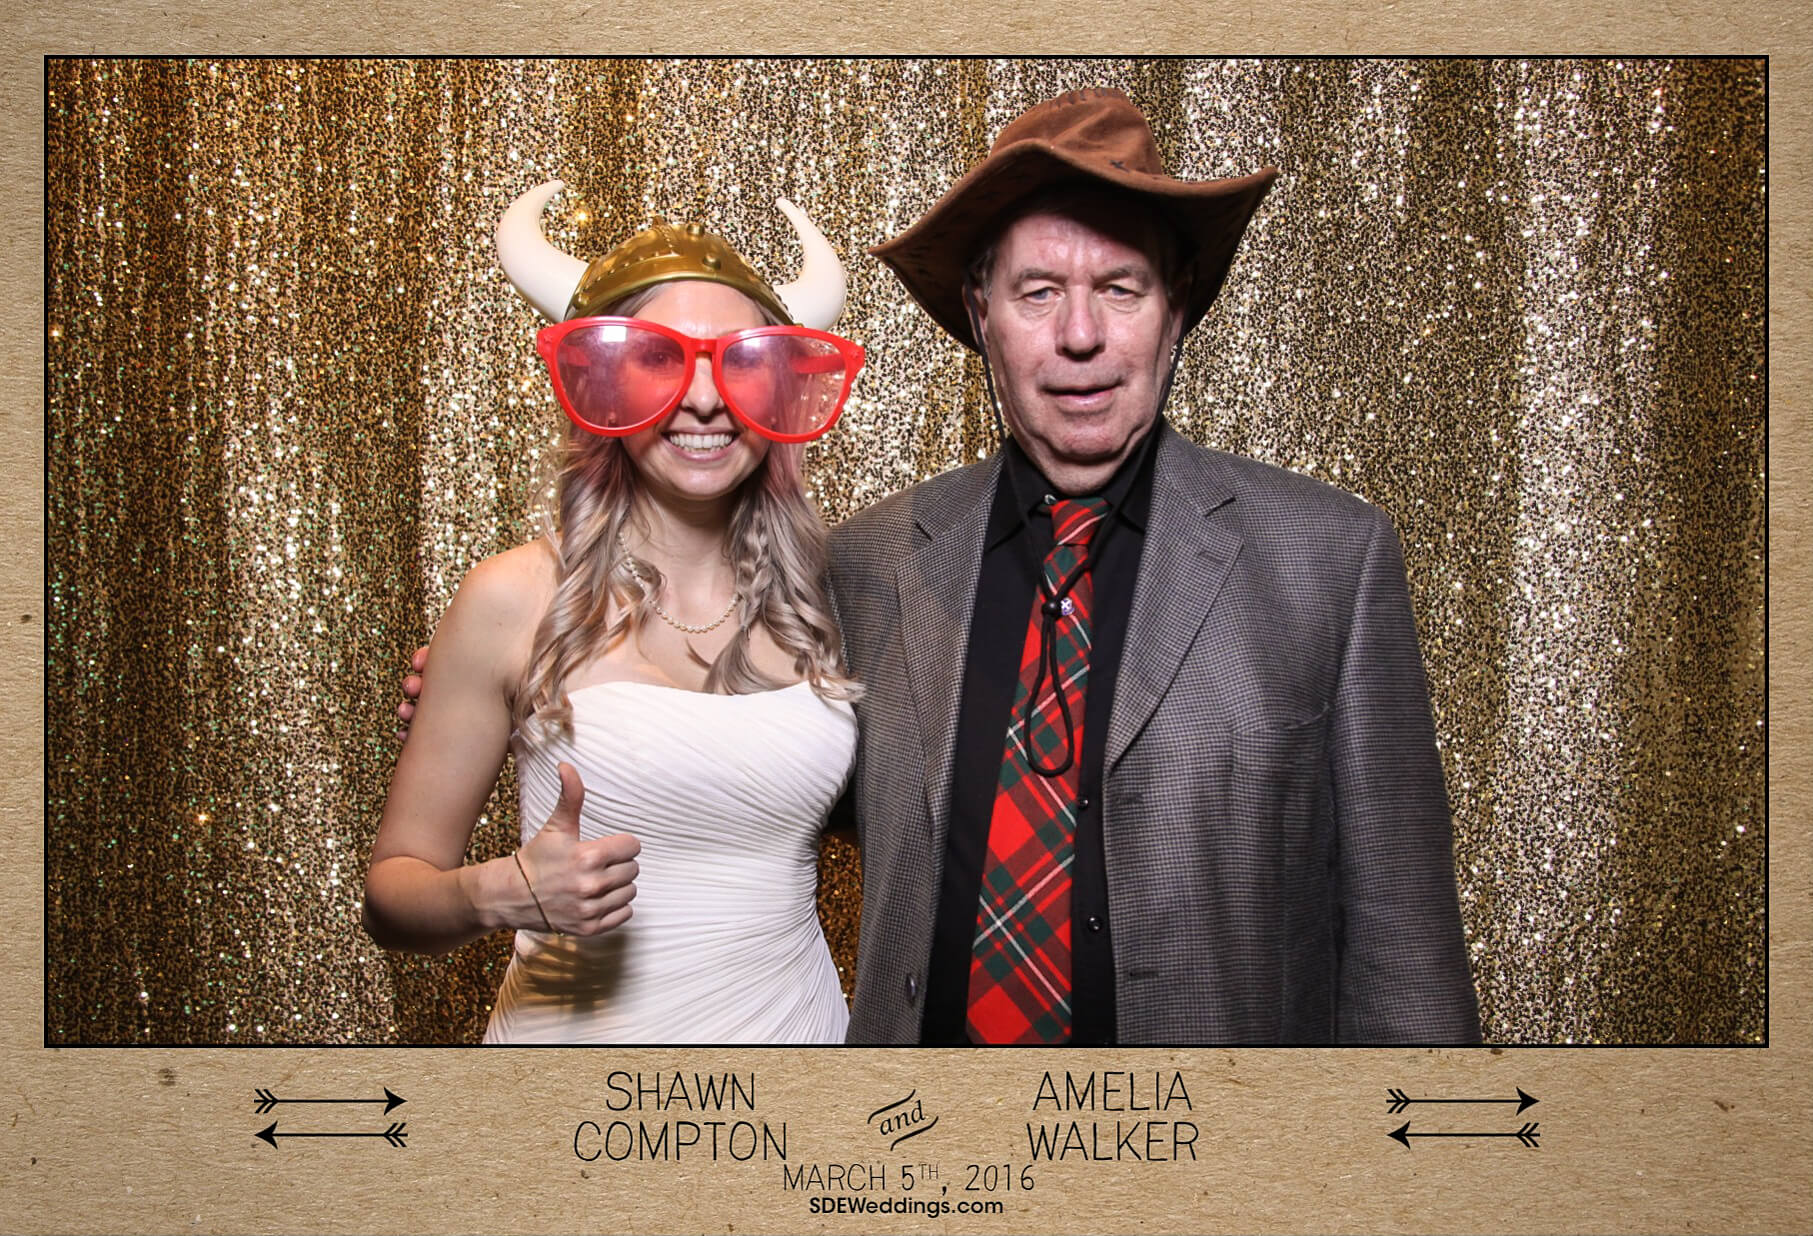 Toronto Propeller Coffee Wedding Photo Booth Rental 2